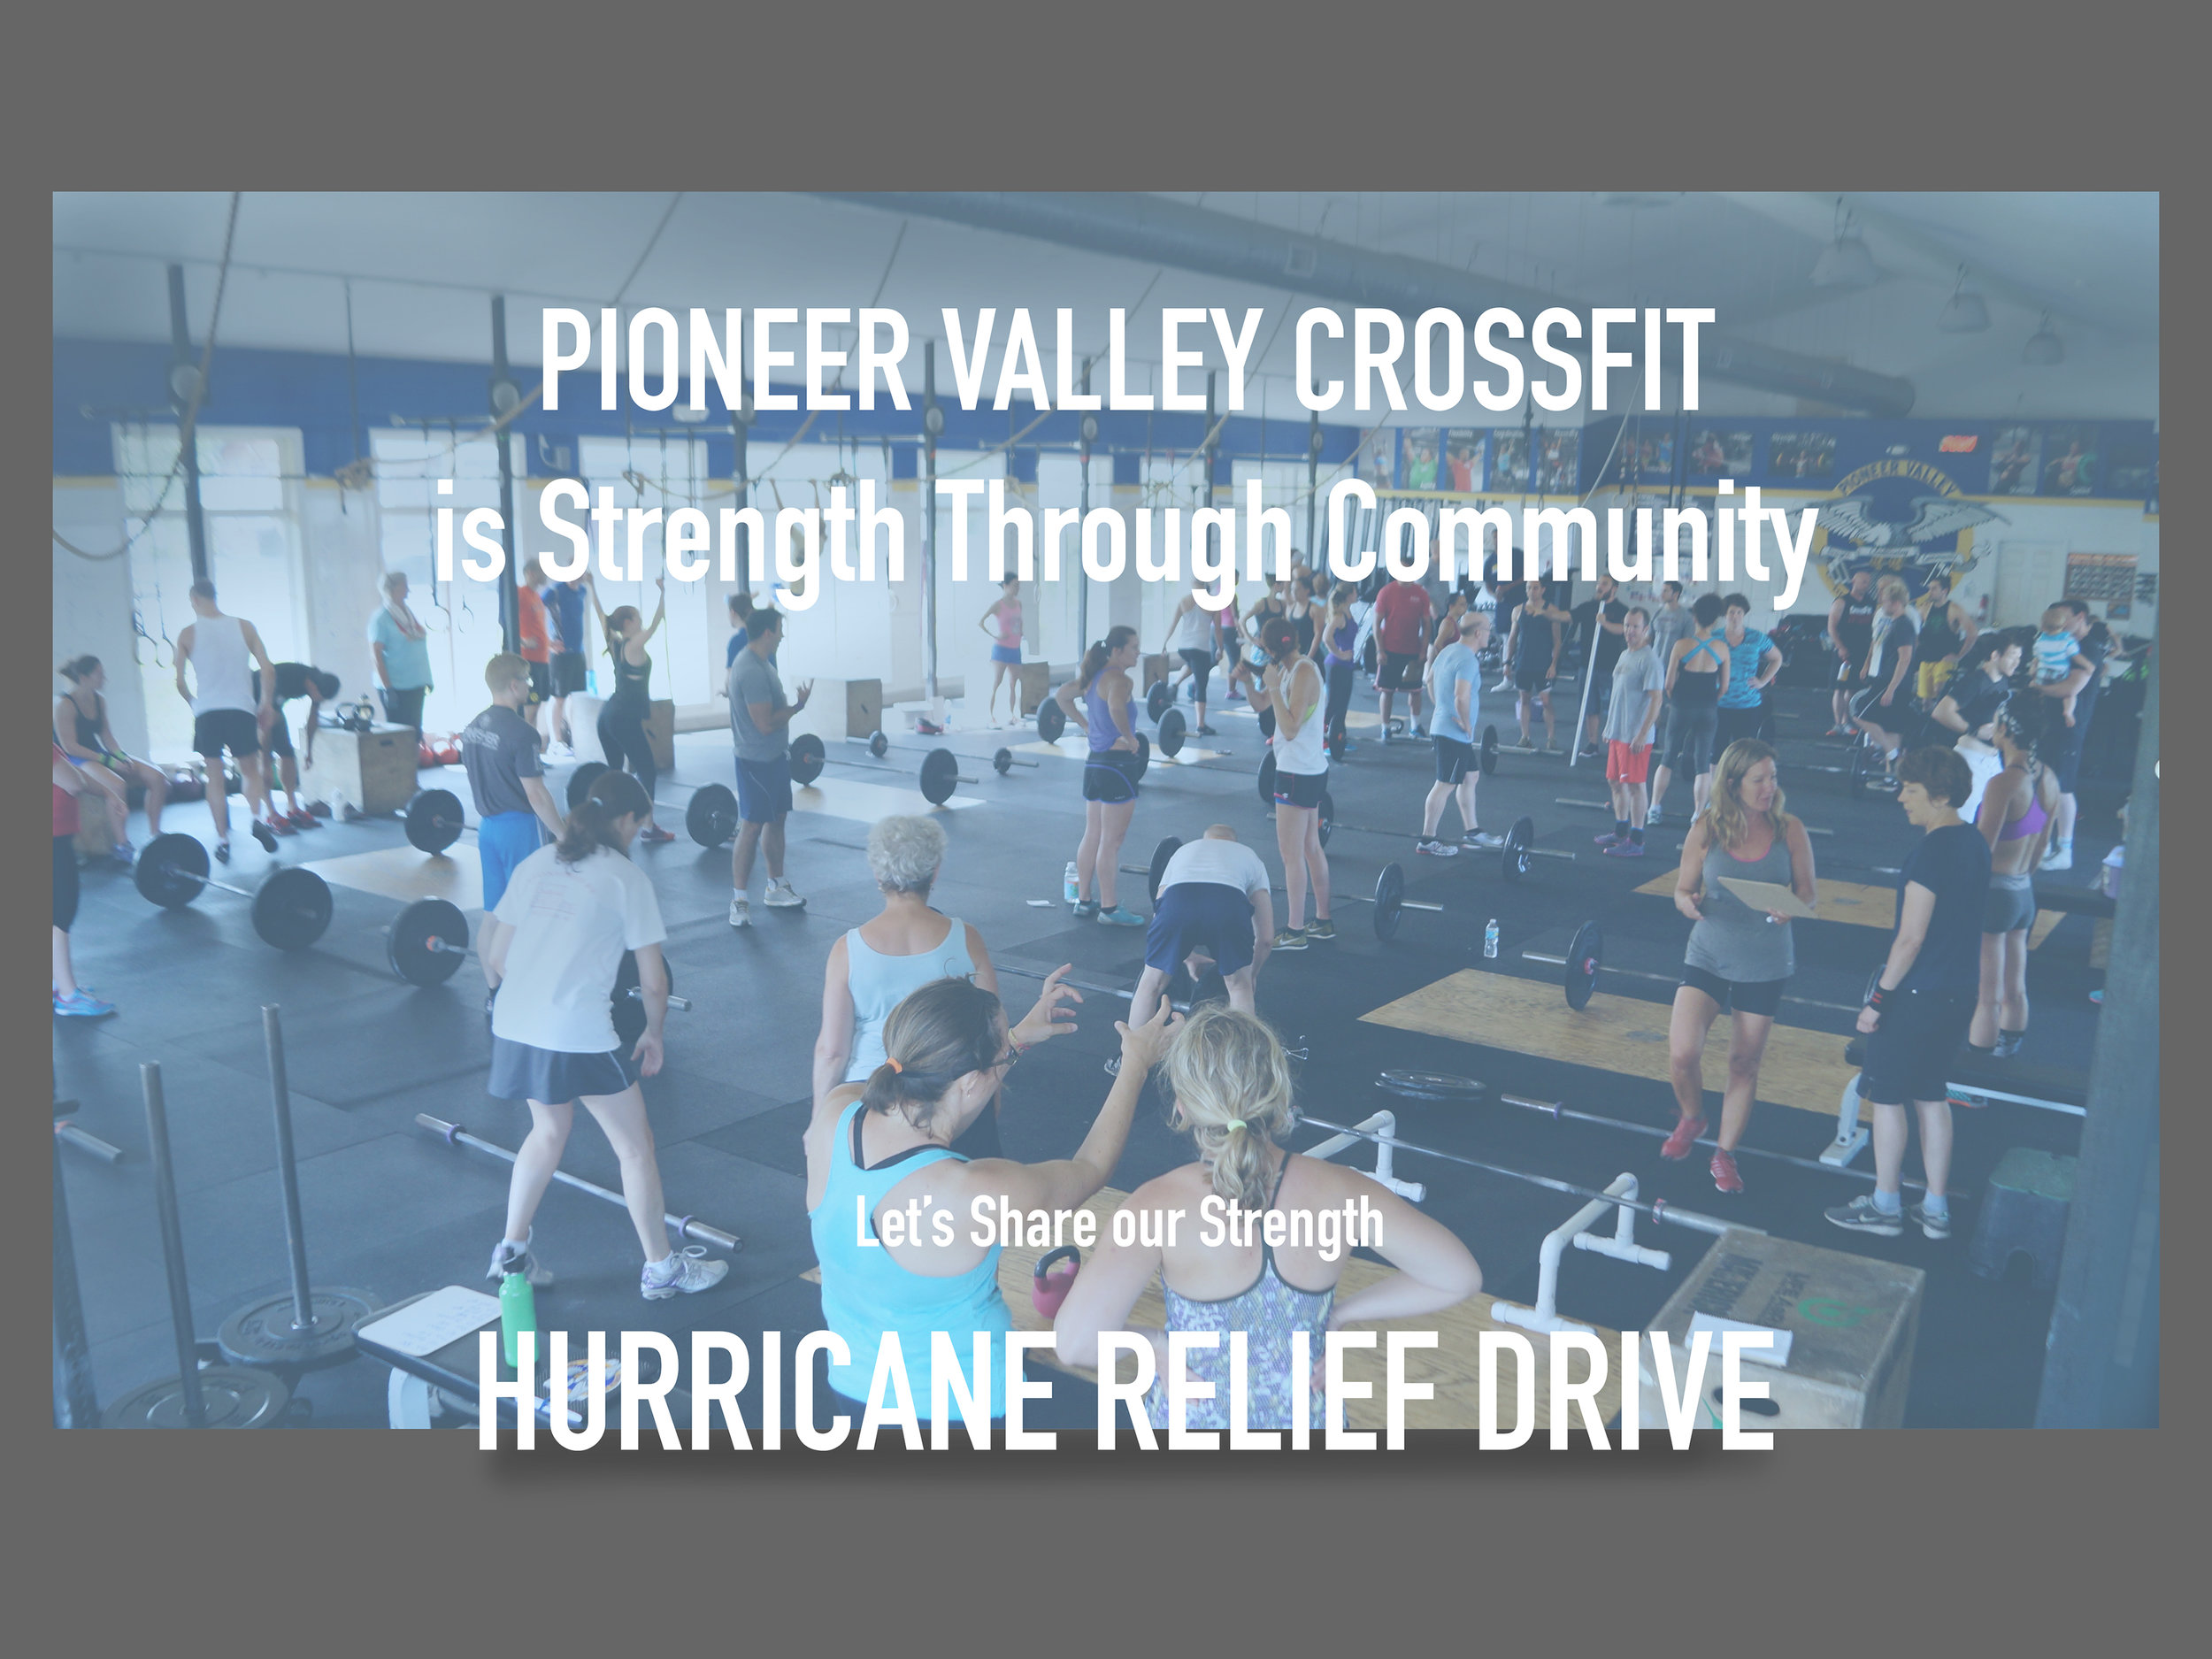 Donation drop offs will be at both of our locations <3 Donate and get entered to win a FREE massage from Lauren Abend! If you've donated, email  liz@pioneervalleycrossfit.com   Check below for a full list of items: